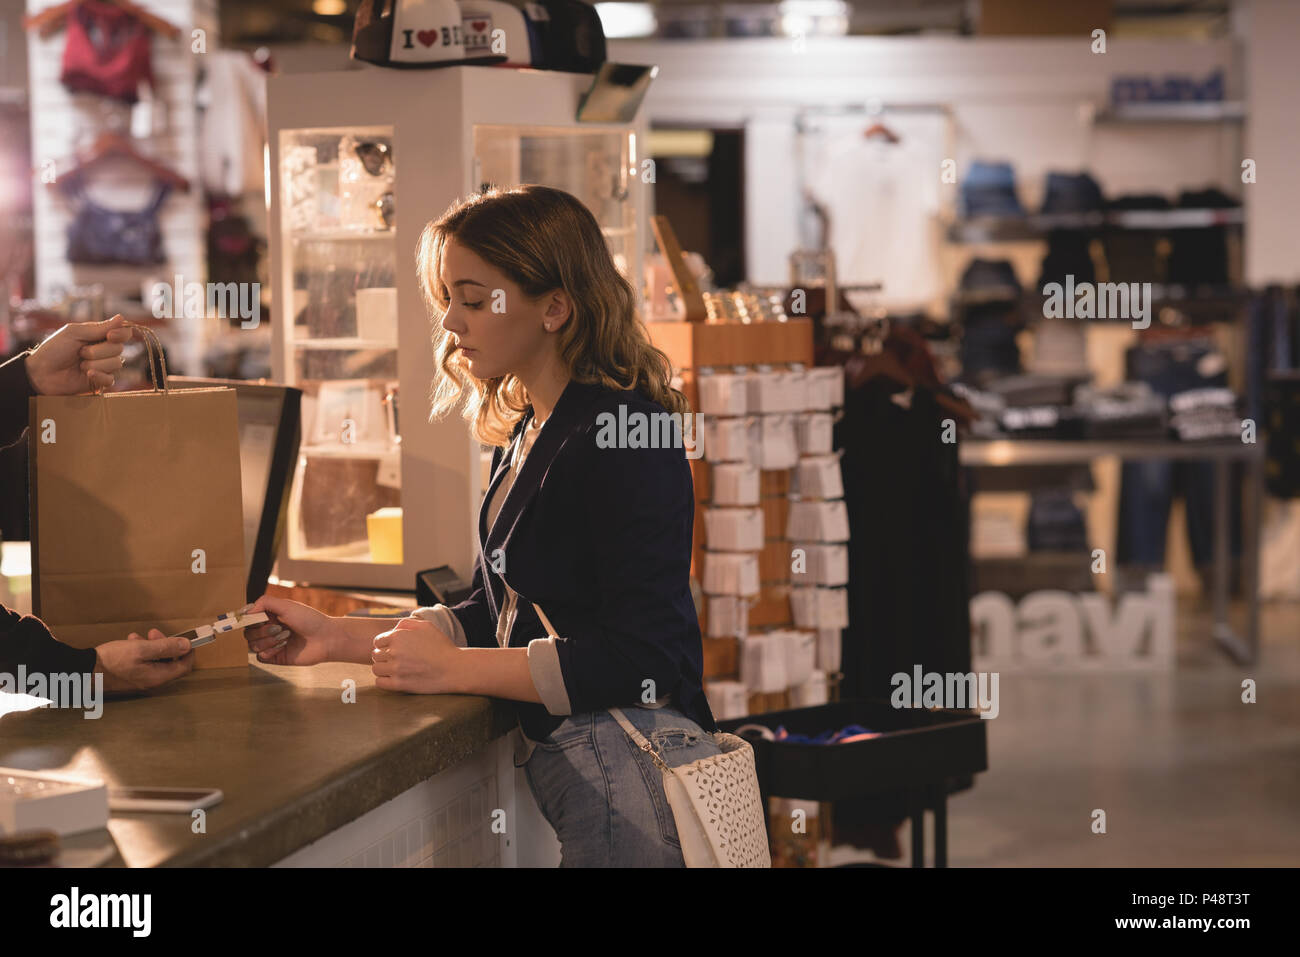 Woman making payment through card - Stock Image